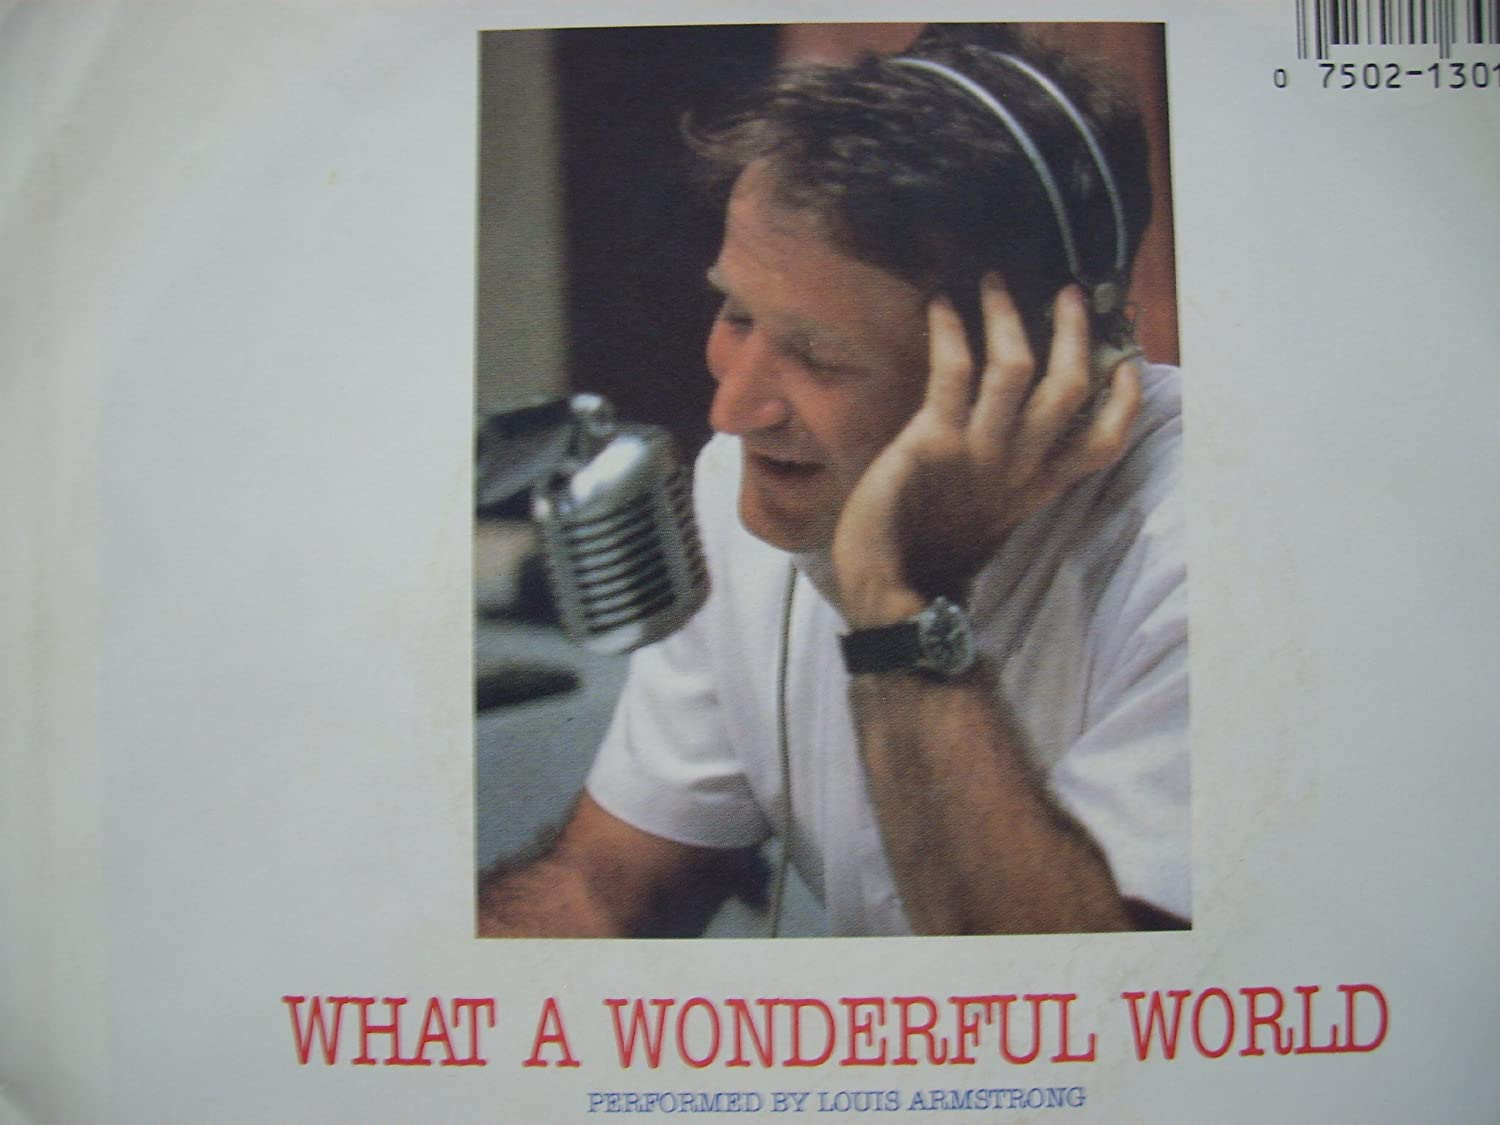 WHAT A WONDERFUL WORLD PERFORMED W LOUIS ARMSTRONG IN ORIGINAL SLEEVE